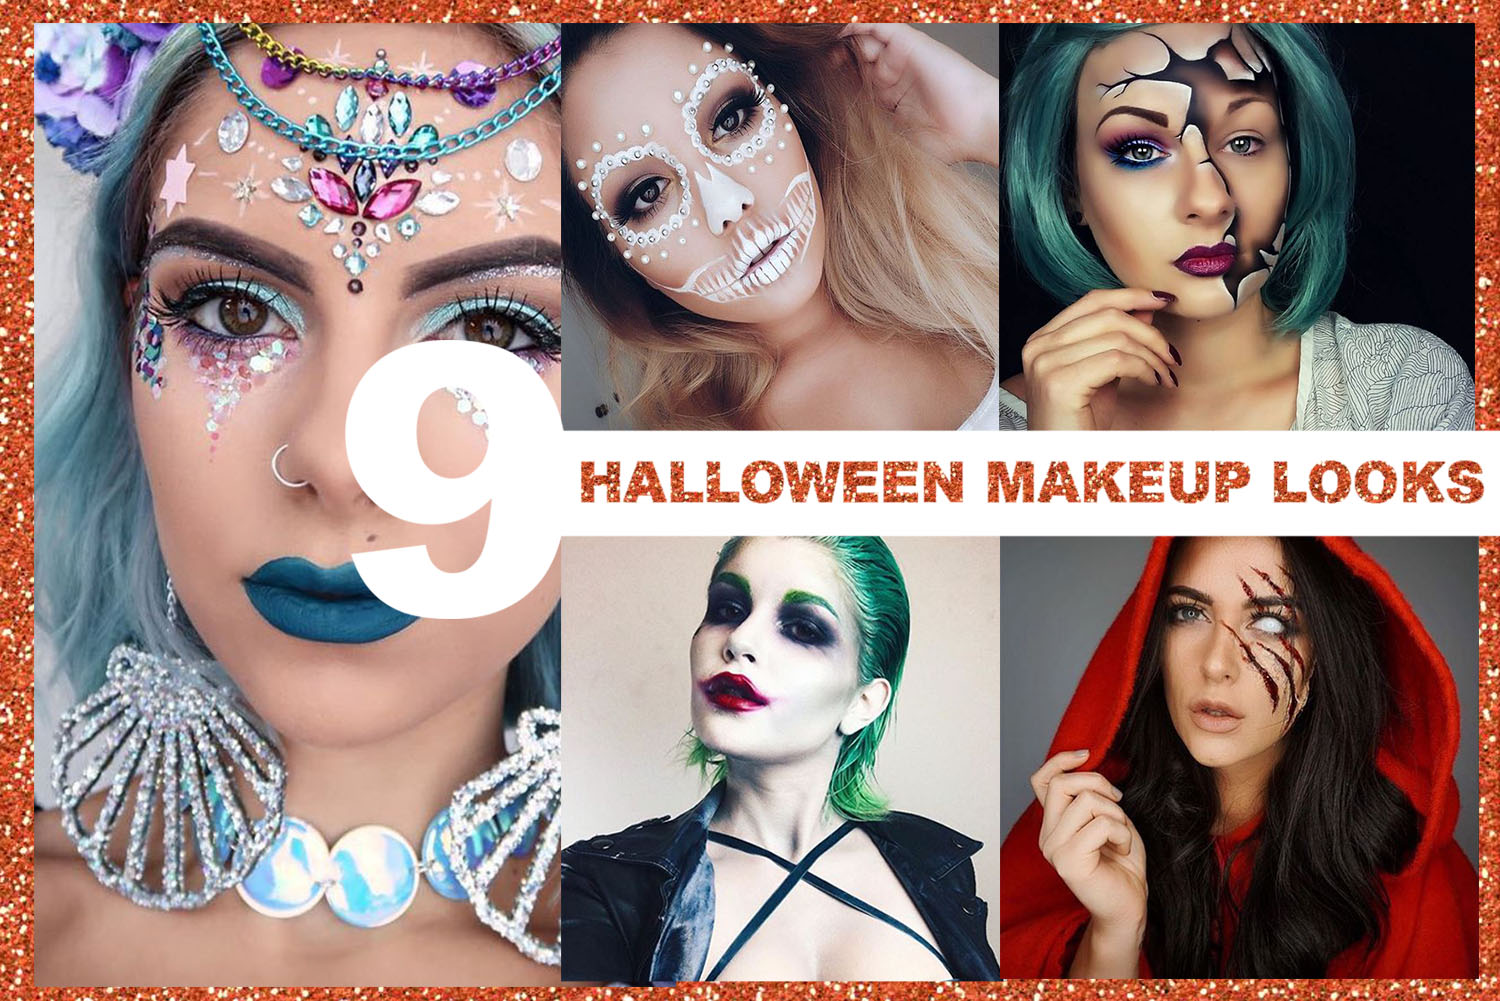 9 UNIQUE HALLOWEEN MAKEUP LOOKS | Styled by Charlie